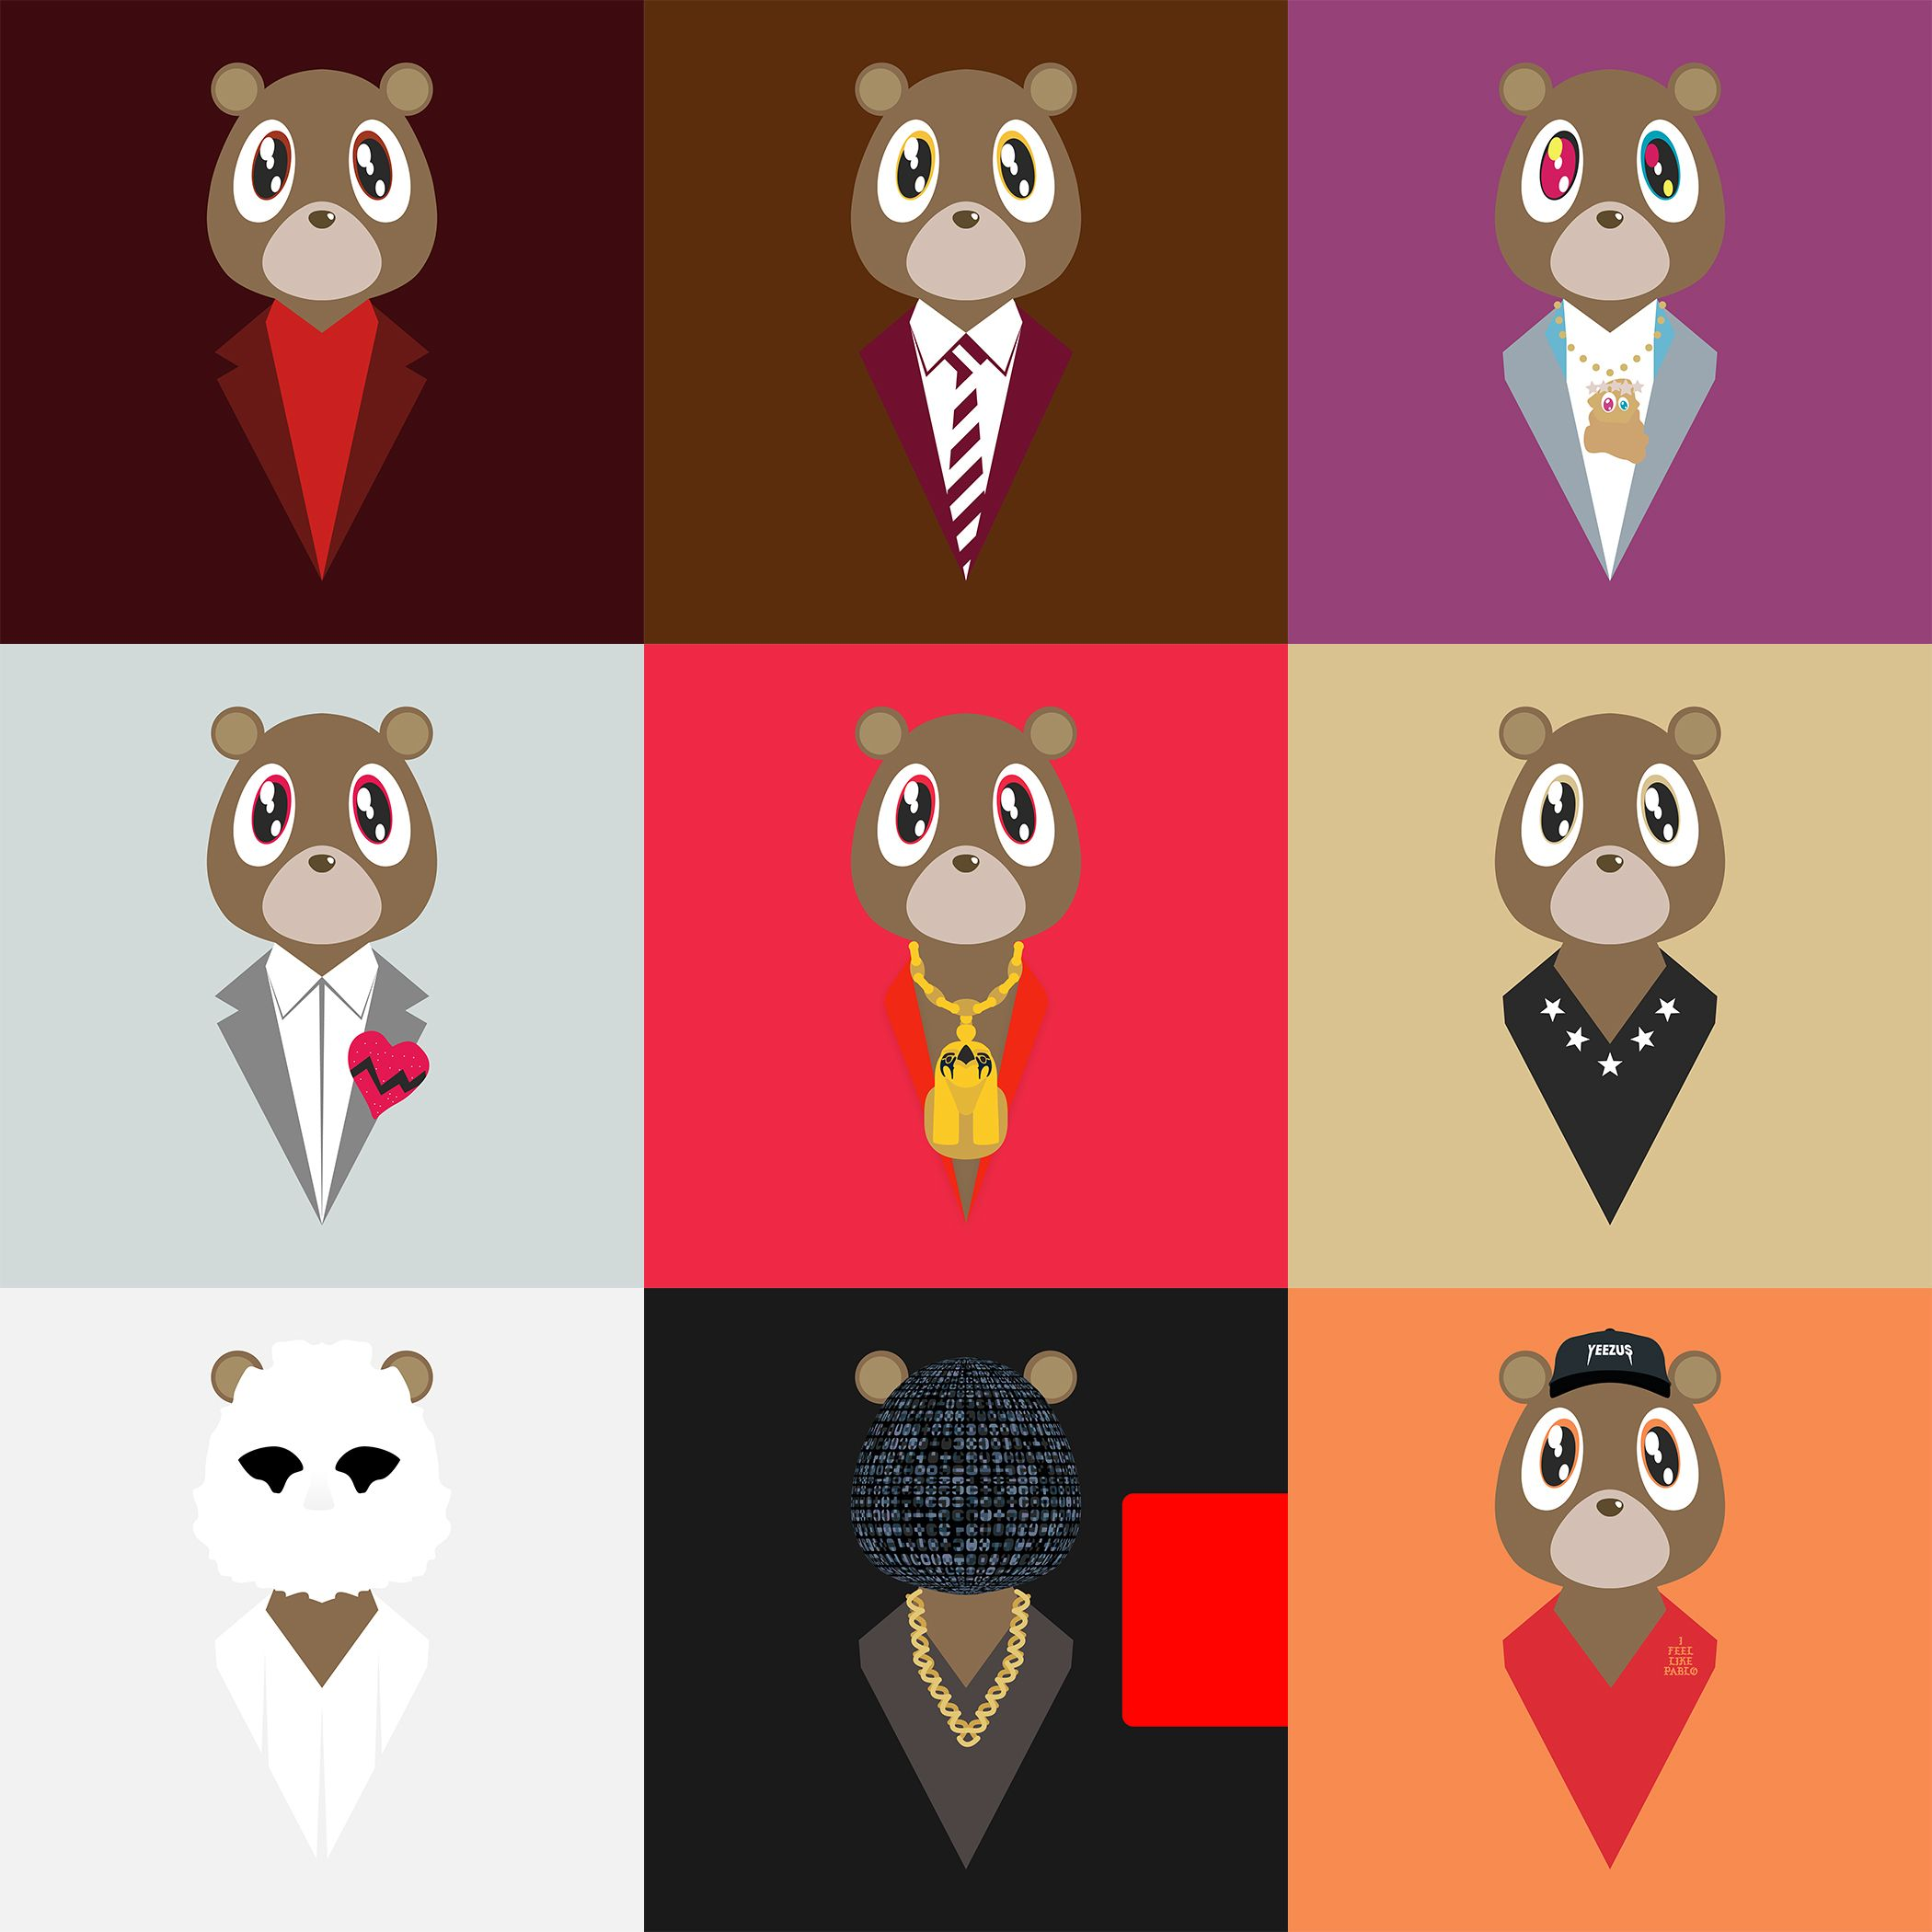 Kanye West Graduation Bear Art Google Search Kanye West Graduation Bear Bear Art Graduation Bear